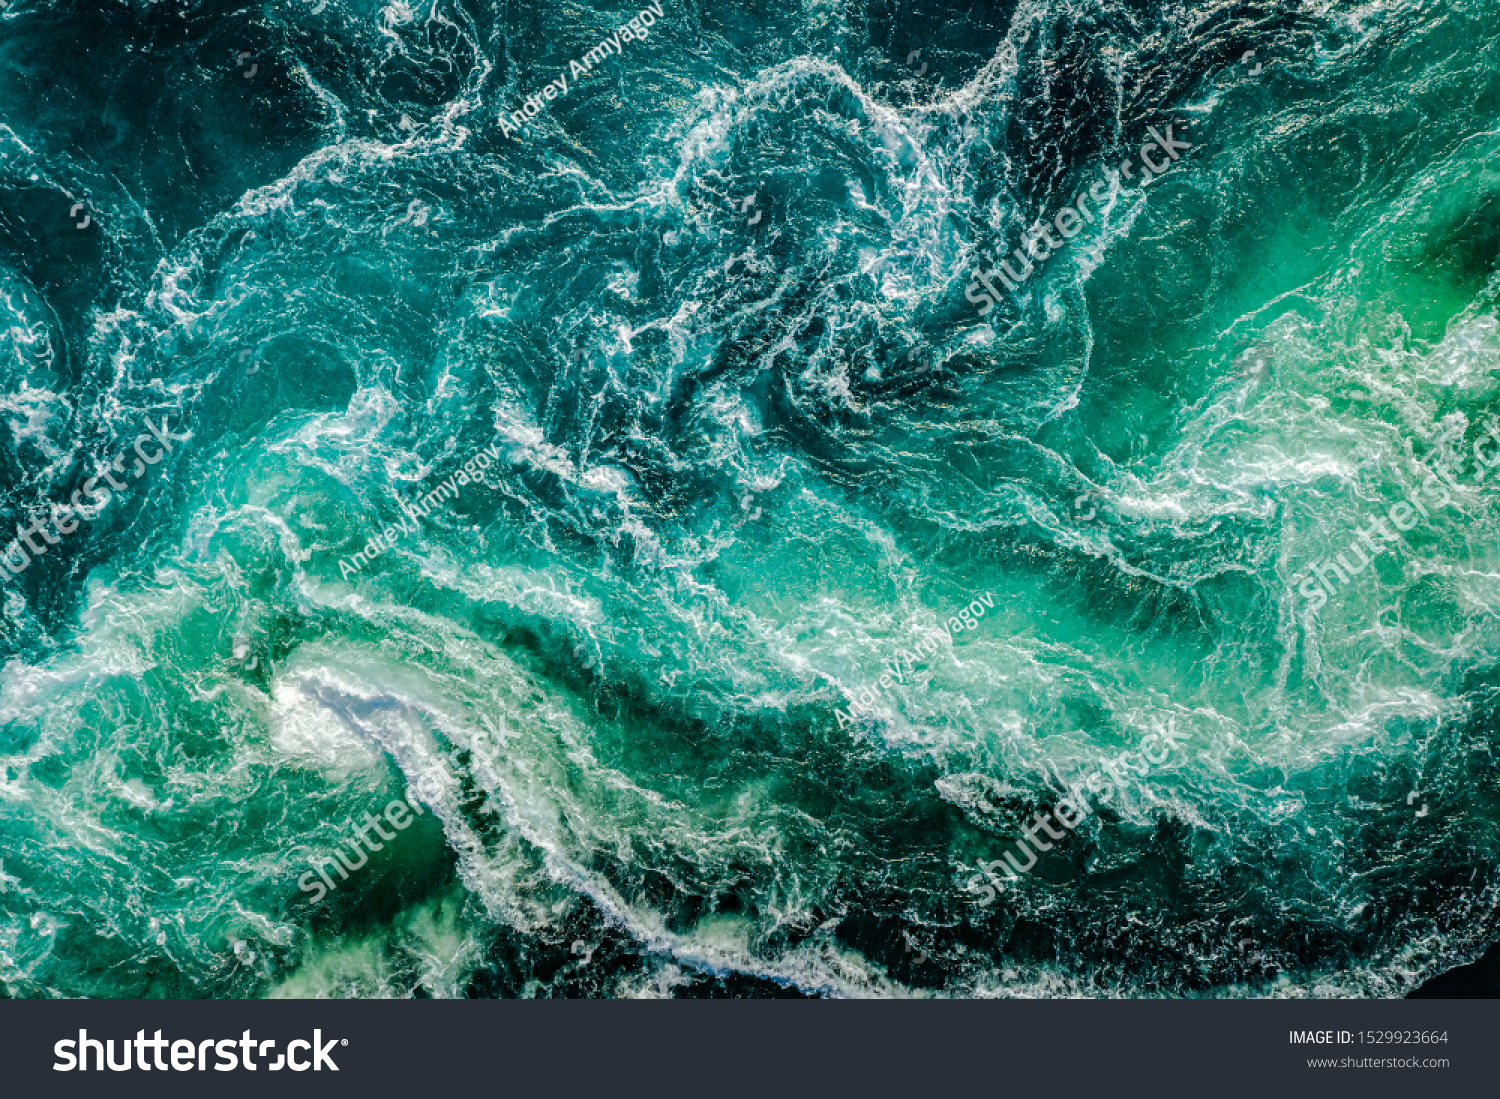 Waves of water of the river and the sea meet each other during high tide and low tide. Whirlpools of the maelstrom of Saltstraumen, Nordland, Norway #1529923664